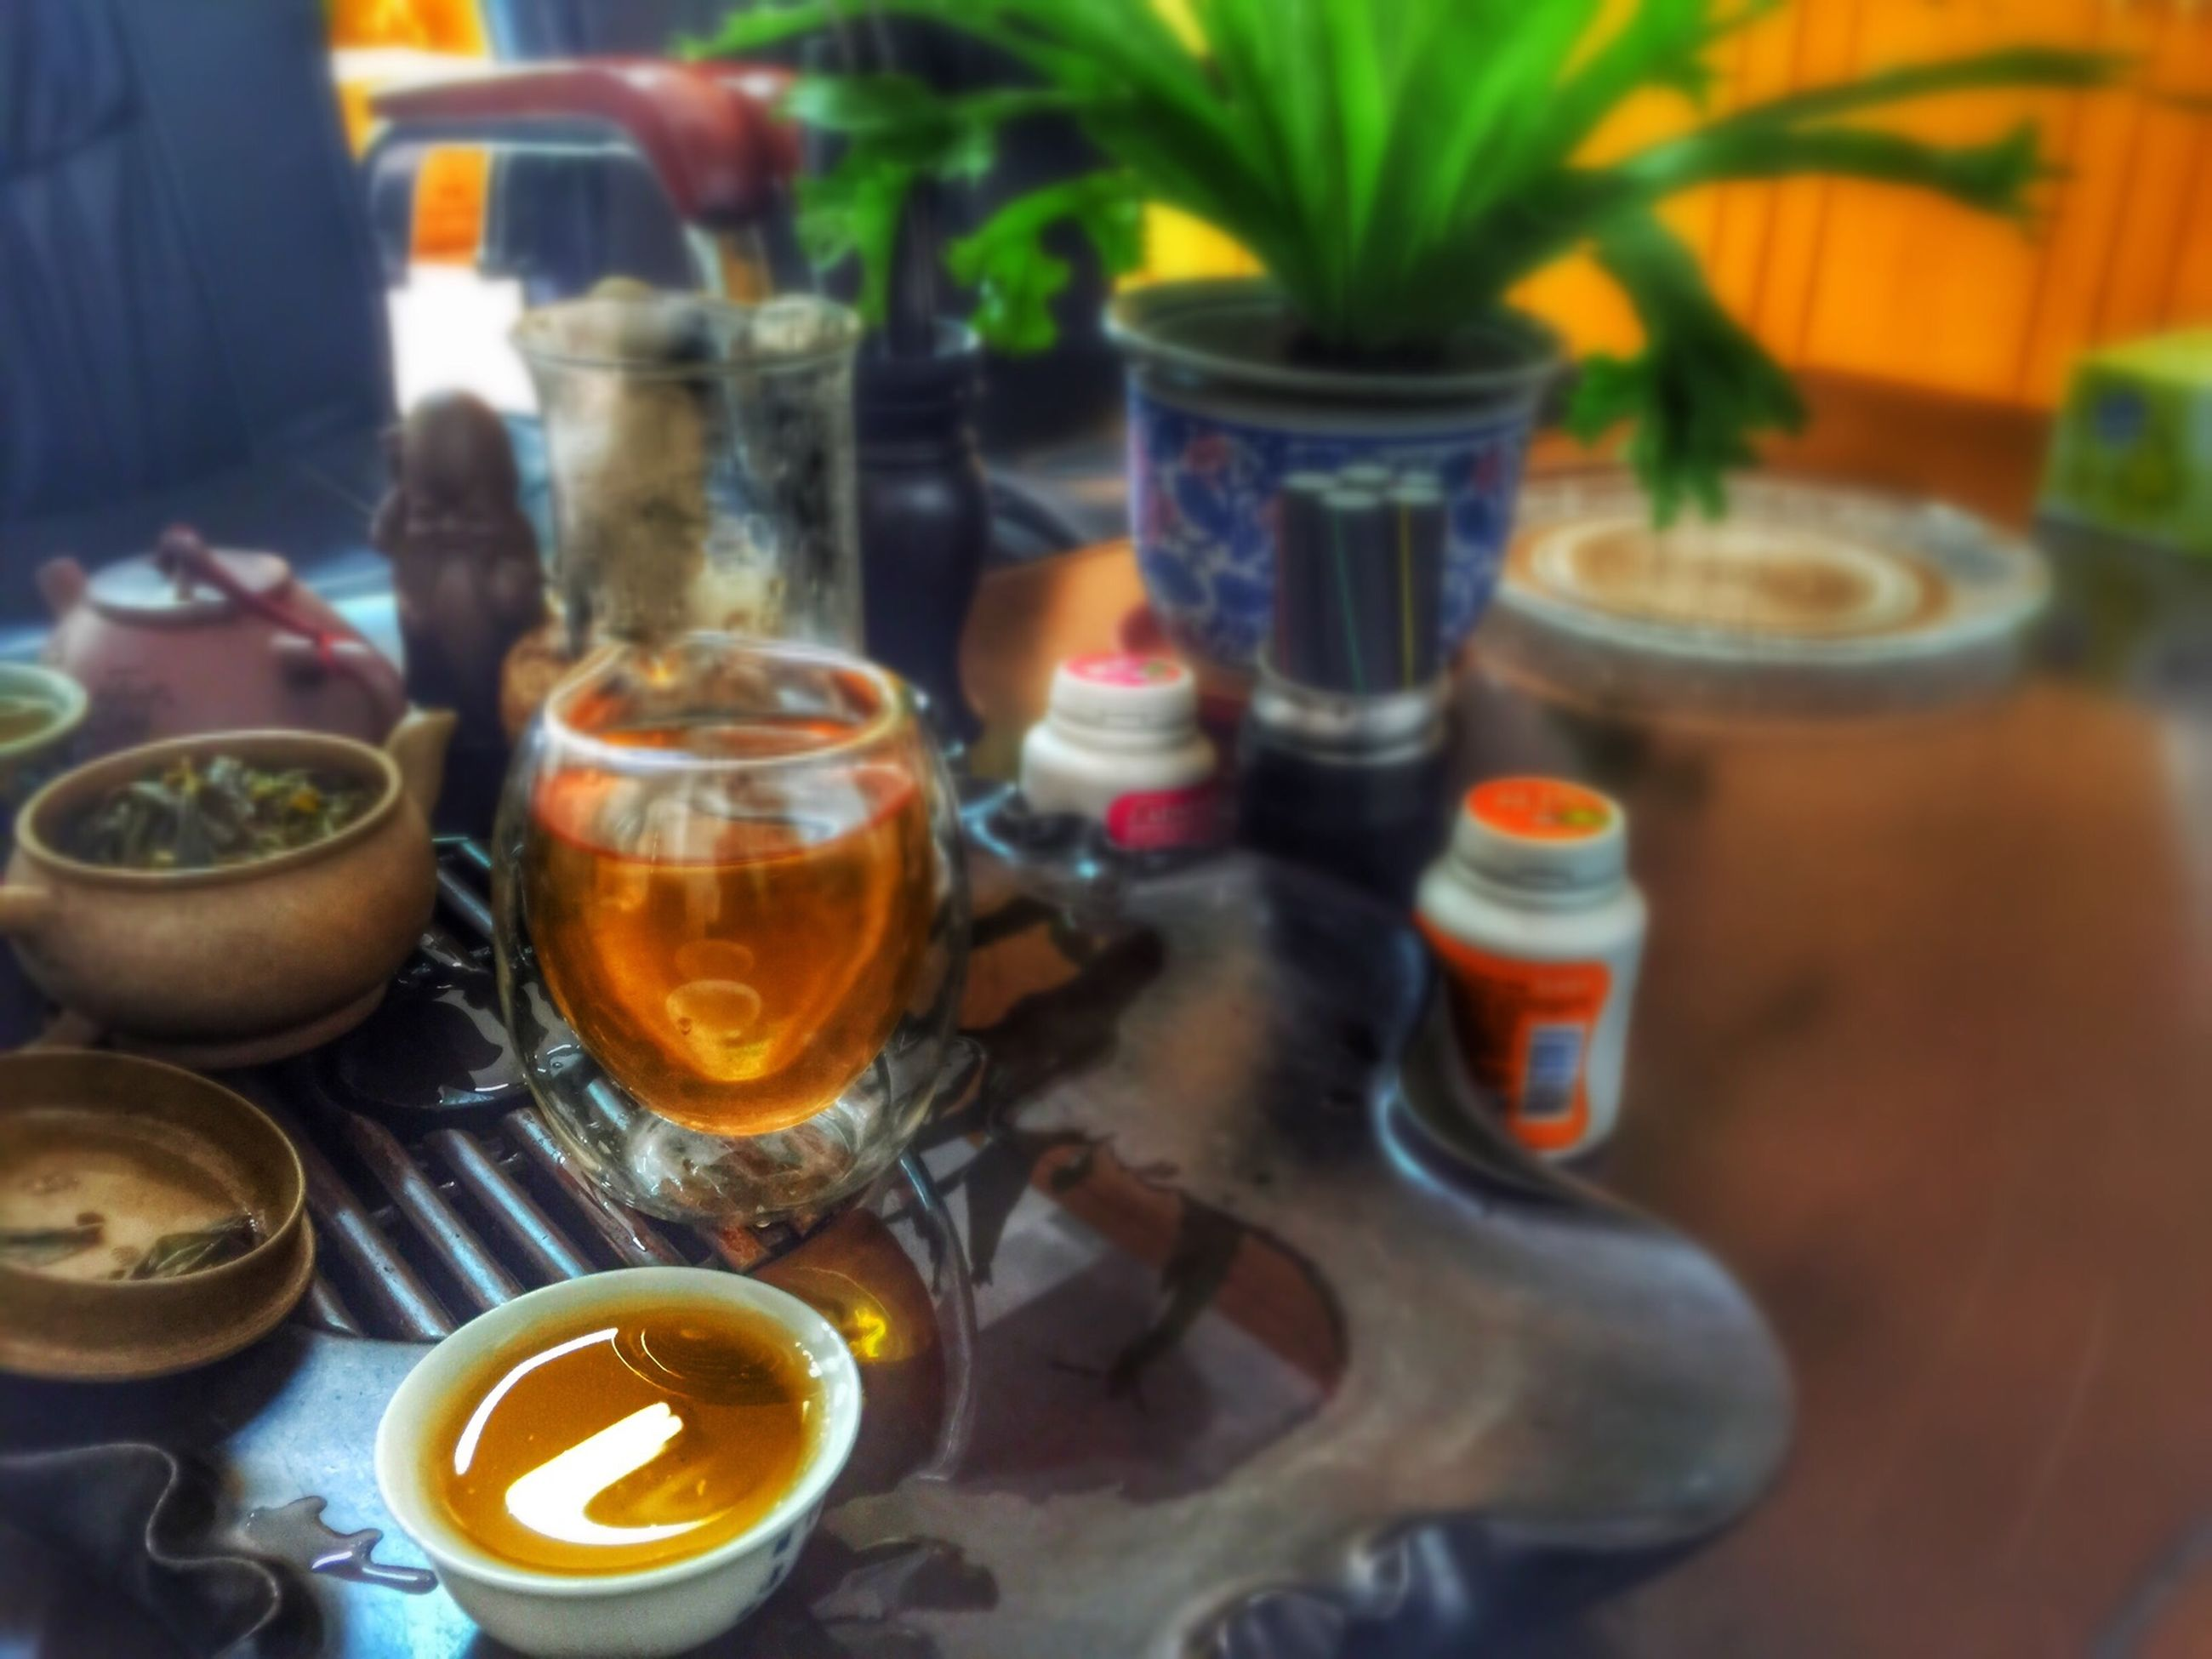 food and drink, drink, indoors, table, refreshment, freshness, still life, drinking glass, close-up, focus on foreground, glass - material, healthy eating, saucer, food, restaurant, coffee cup, coffee - drink, jar, plate, selective focus